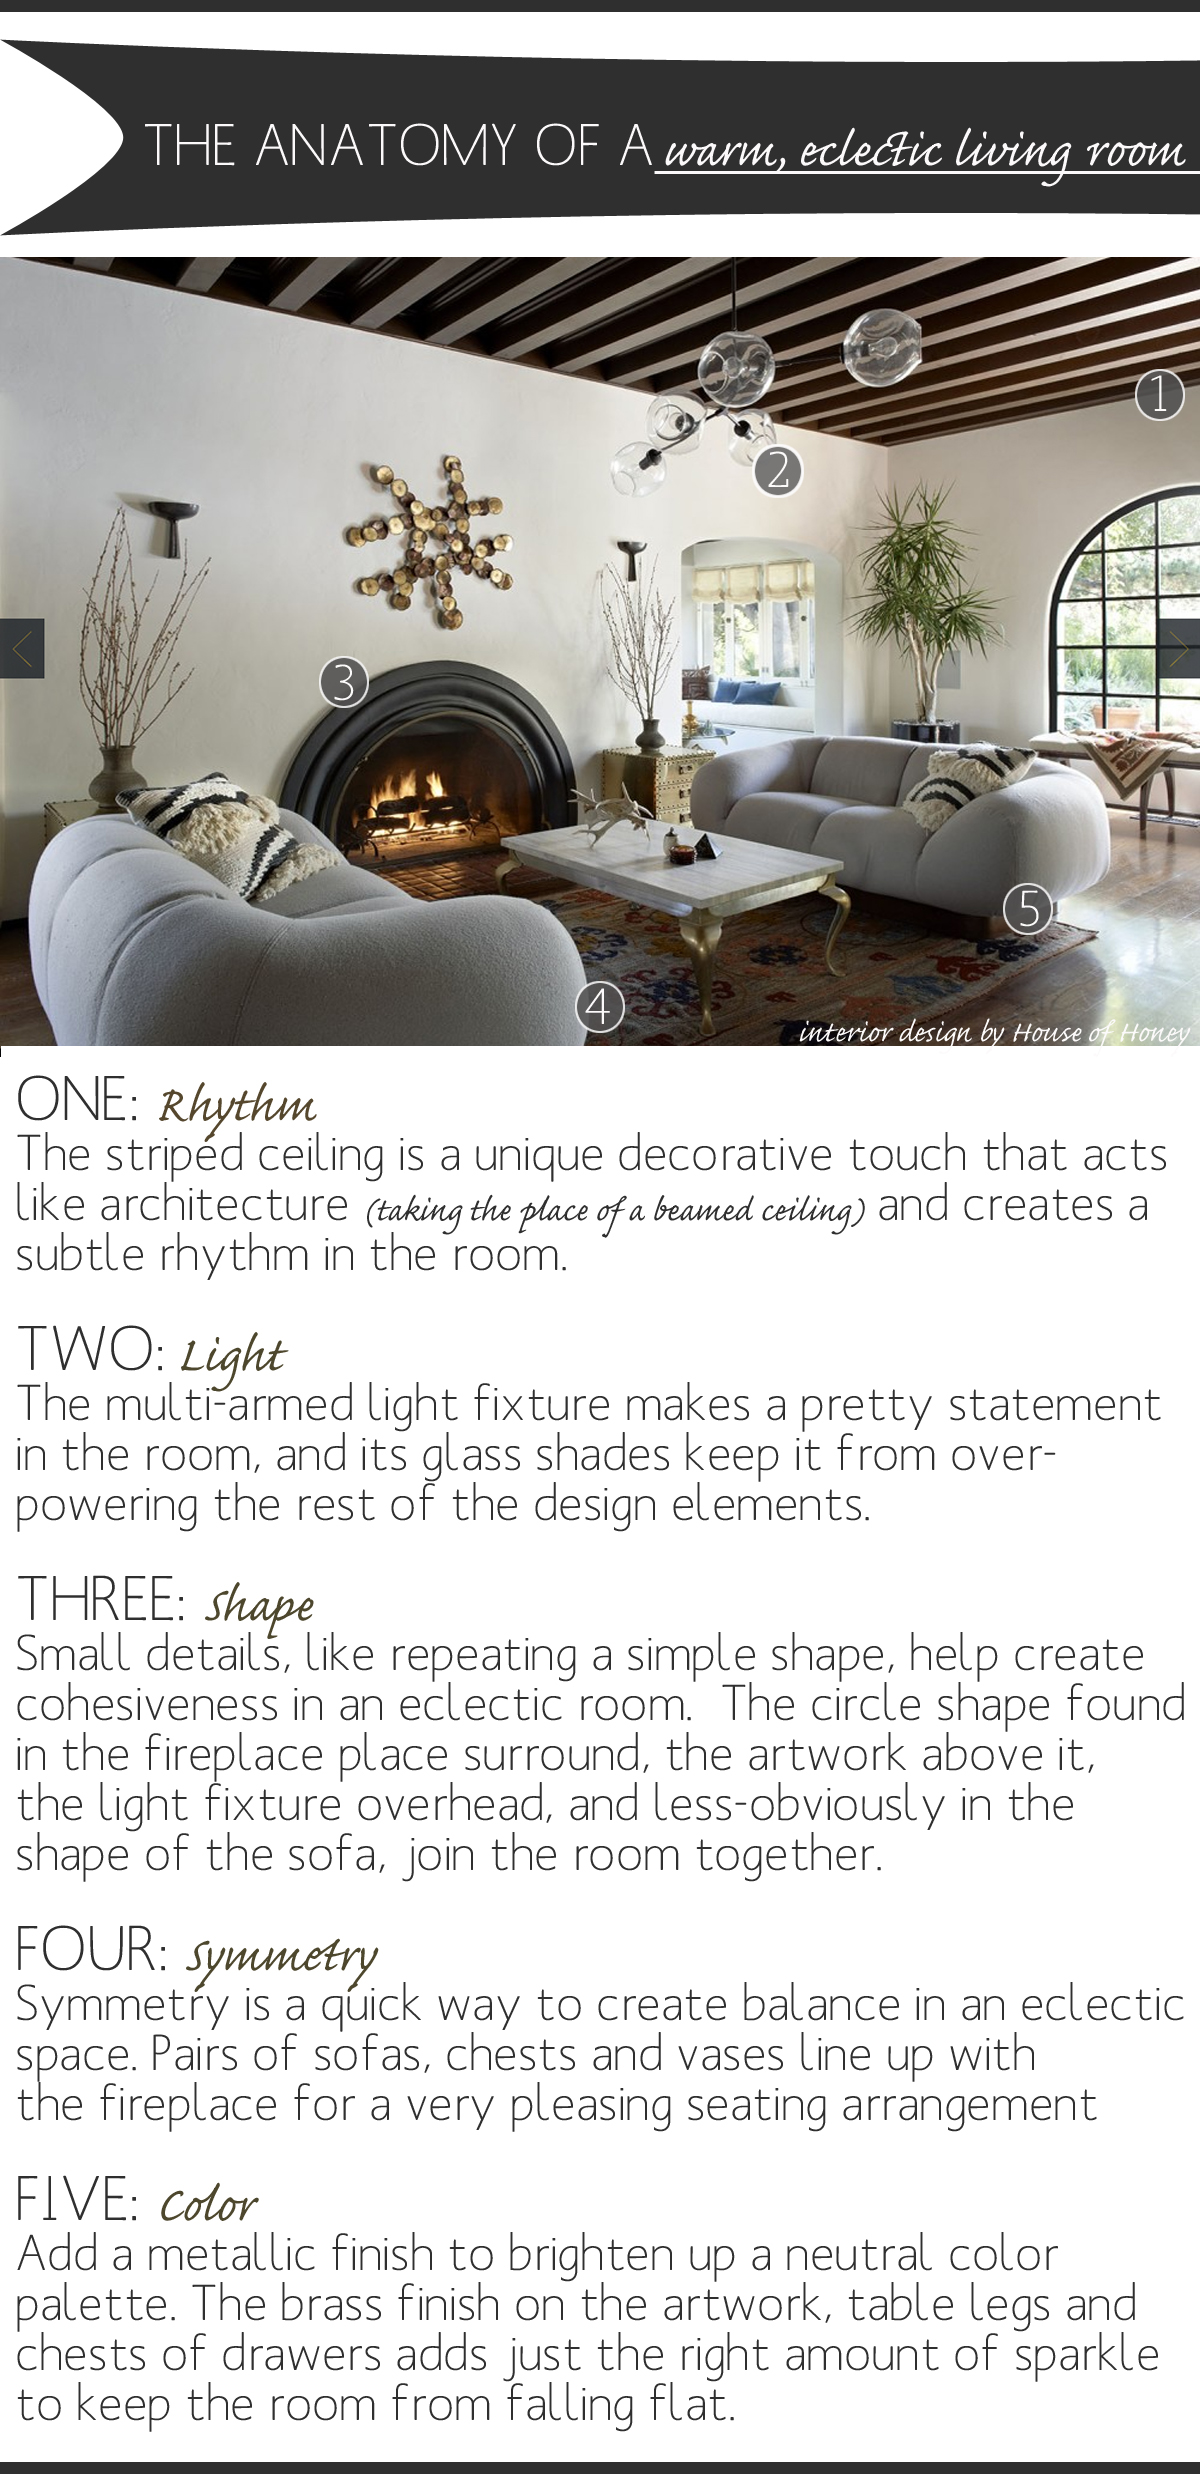 The Anatomy Of A Warm Eclectic Living Room The Anatomy Of Design